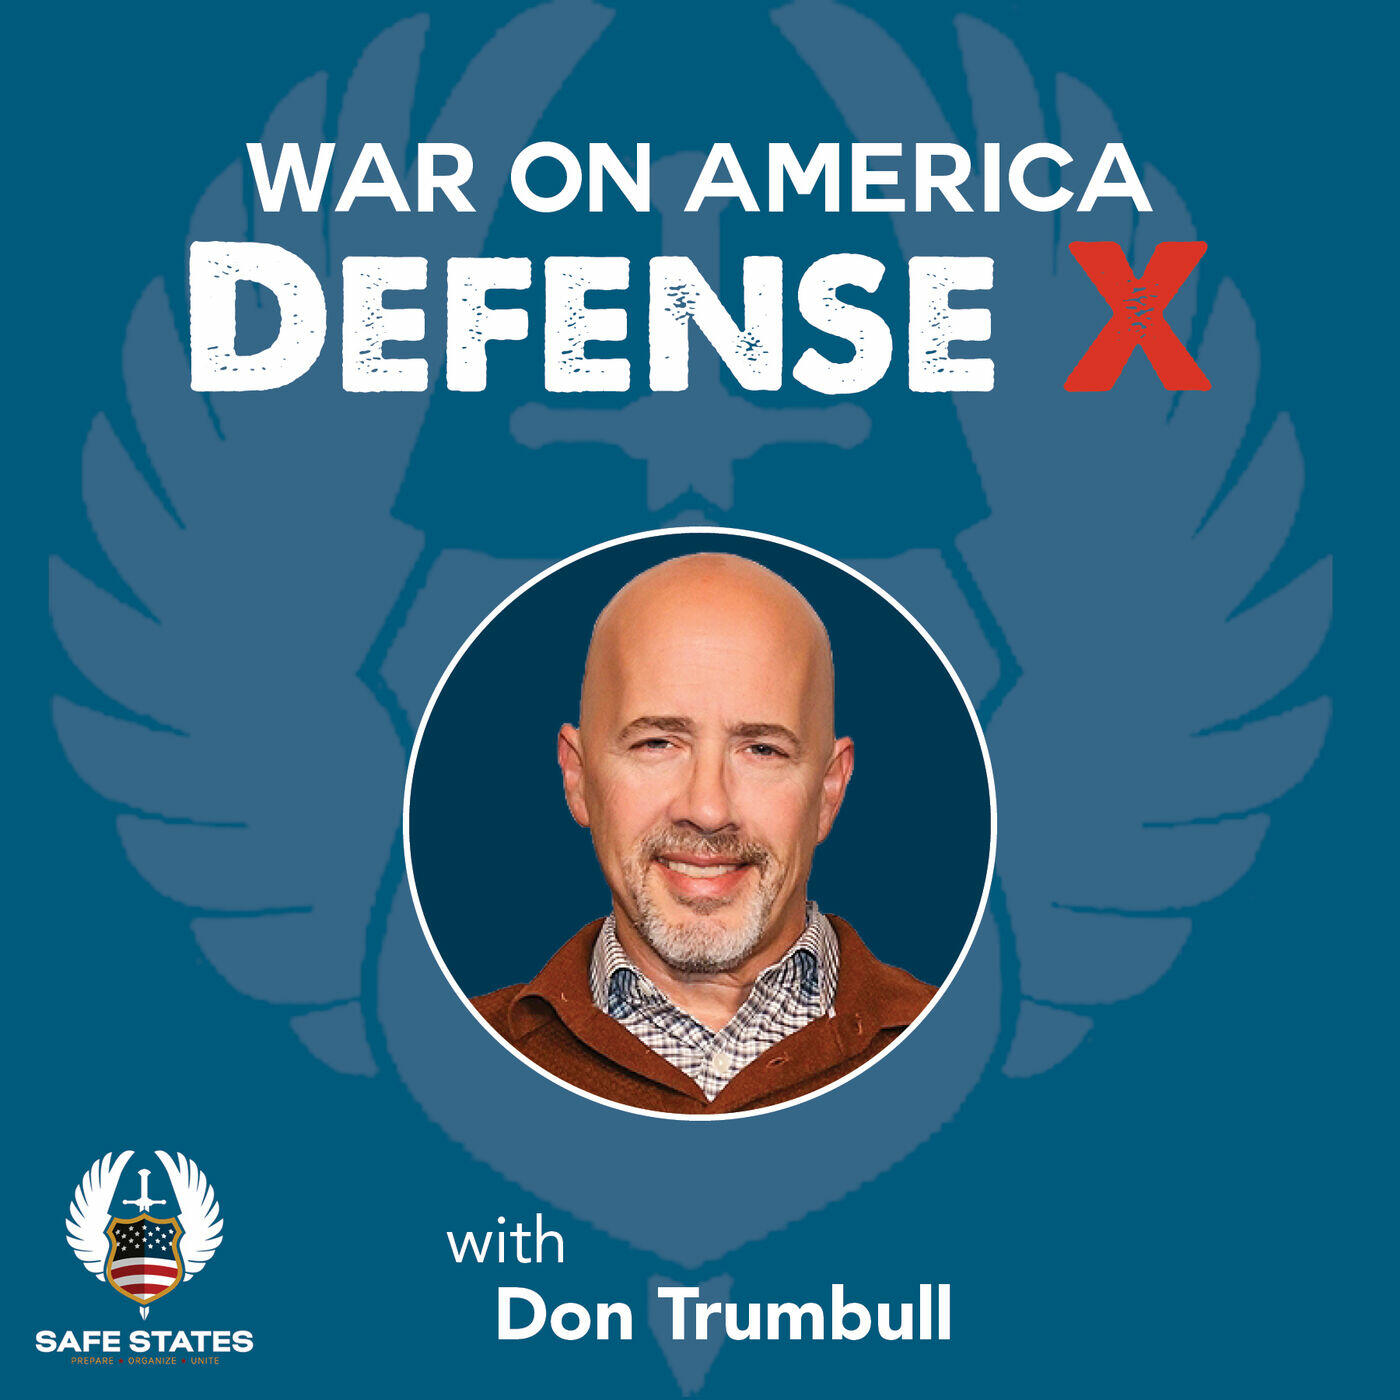 War on America Defense X with Don Trumbull